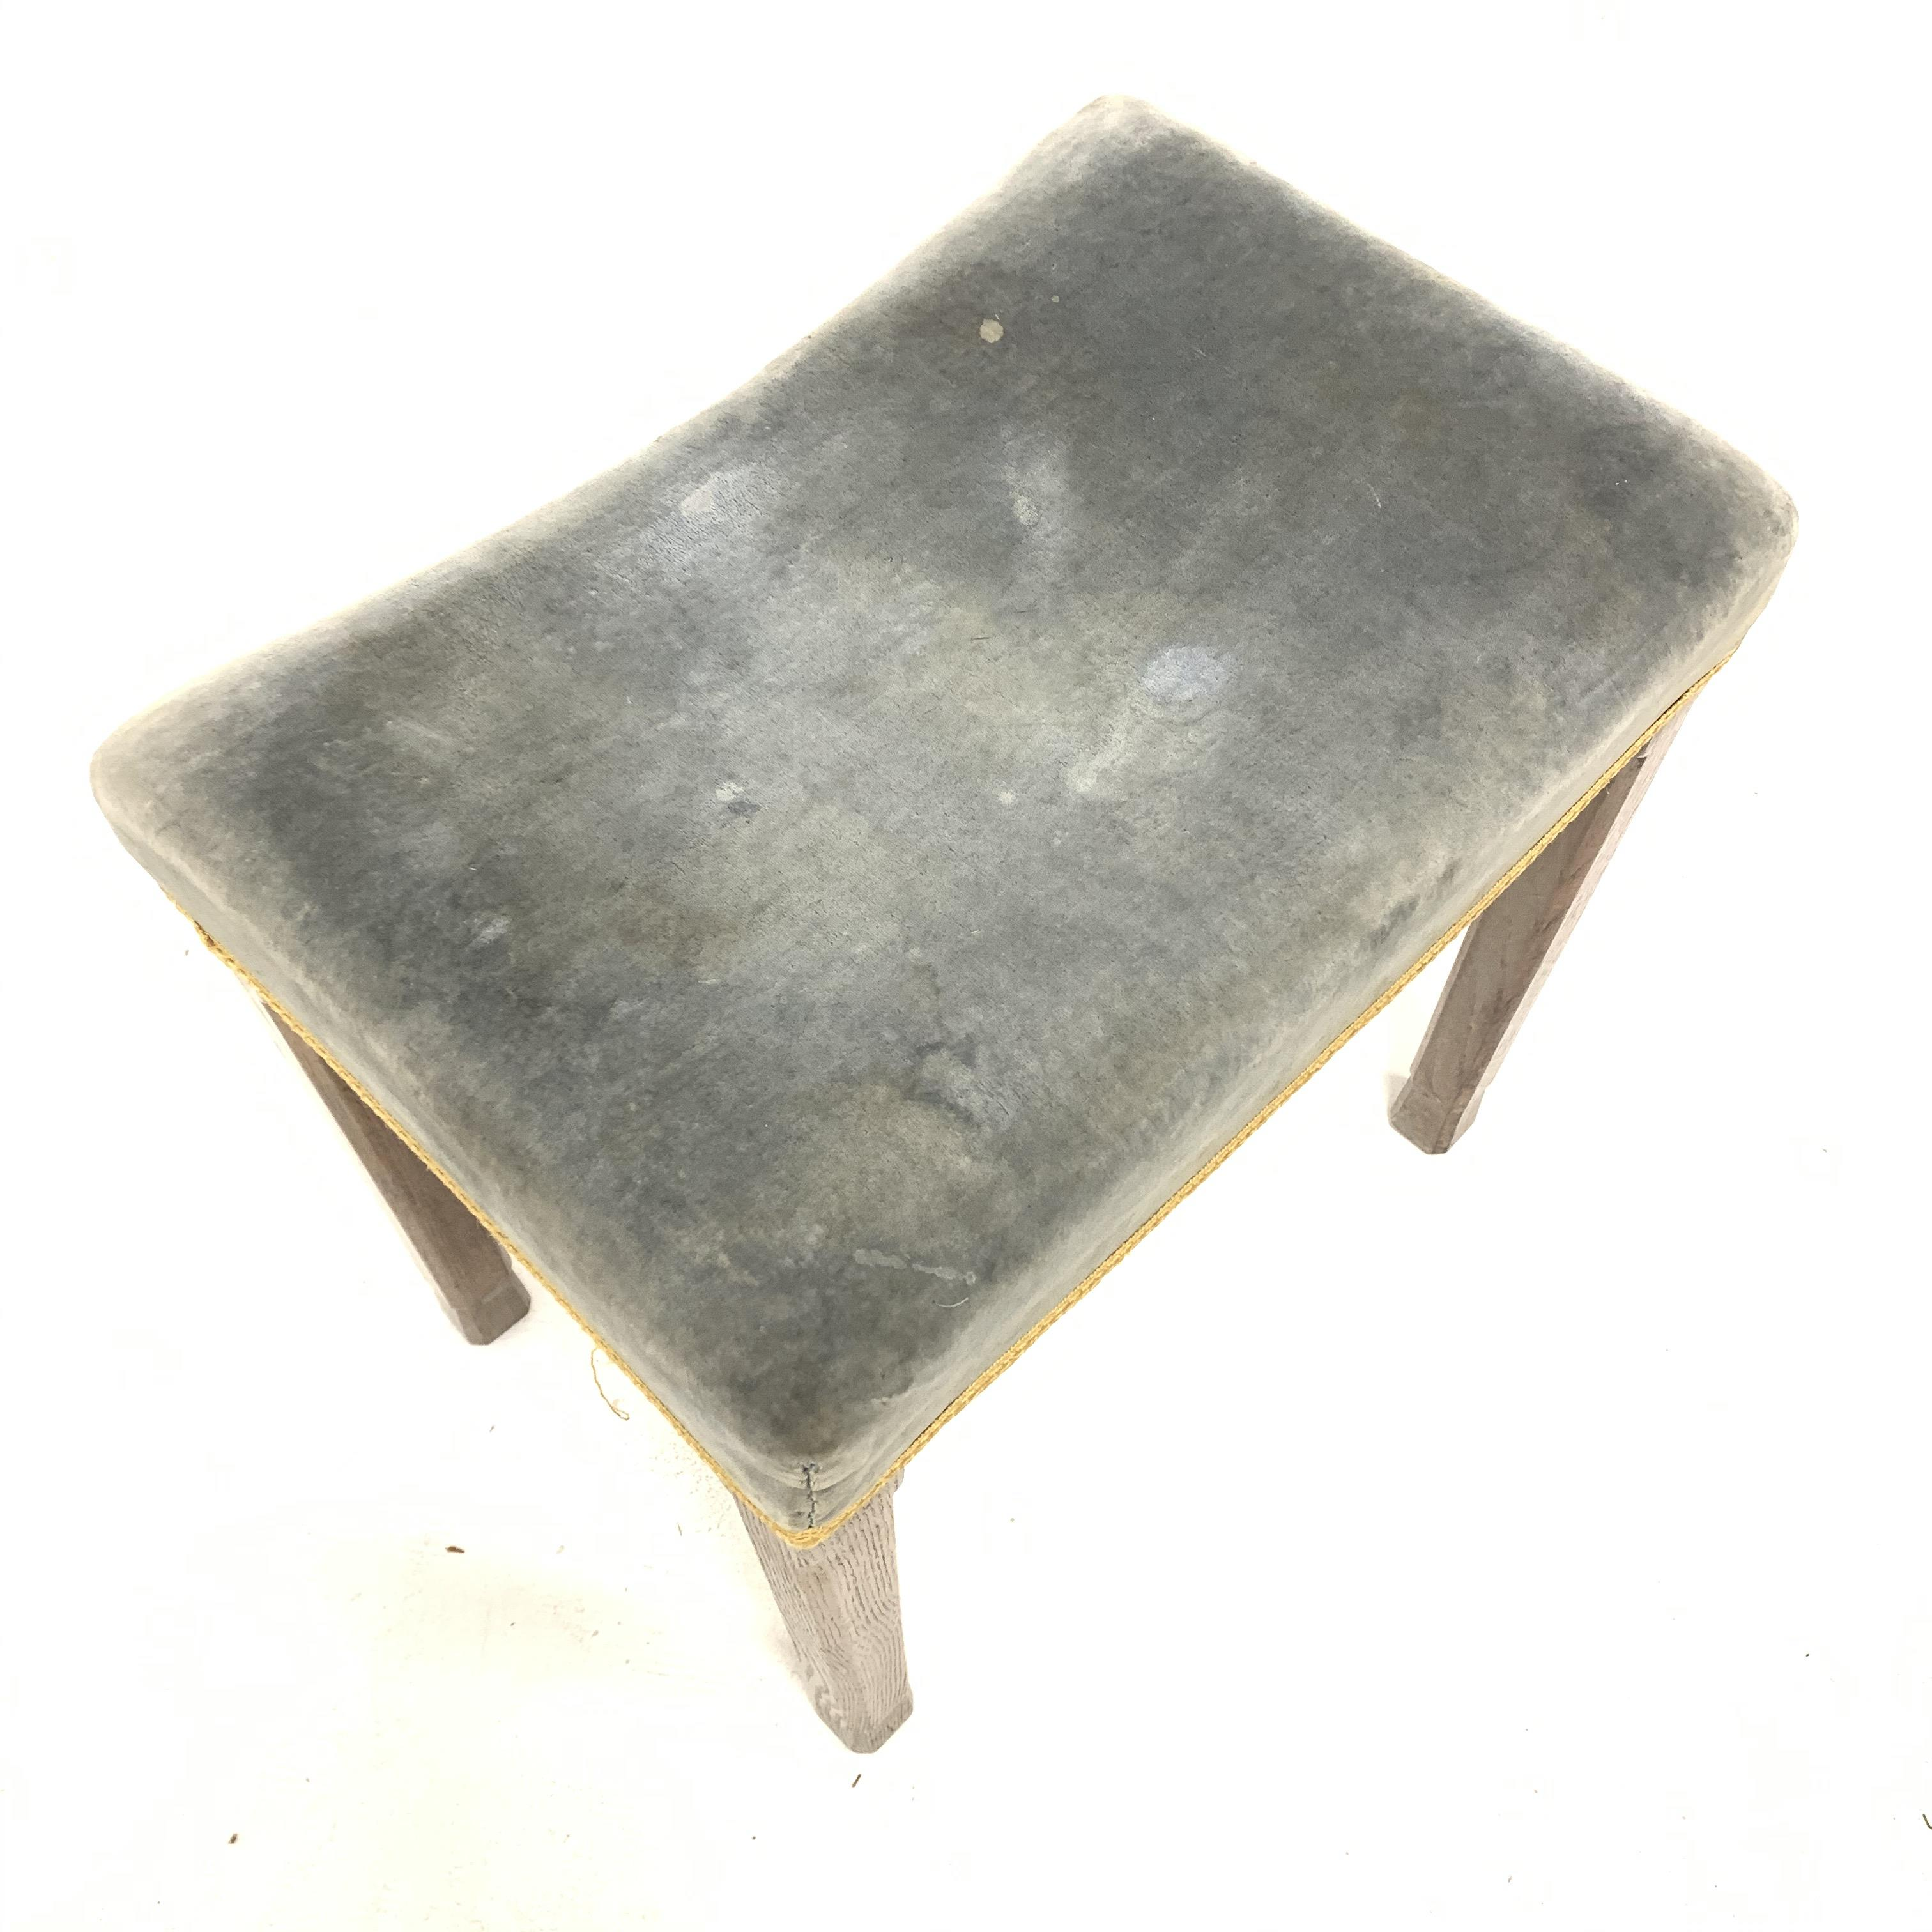 Elizabeth II limed oak Coronation stool with upholstered seat, stamp to the interior seat rail, with - Image 2 of 4